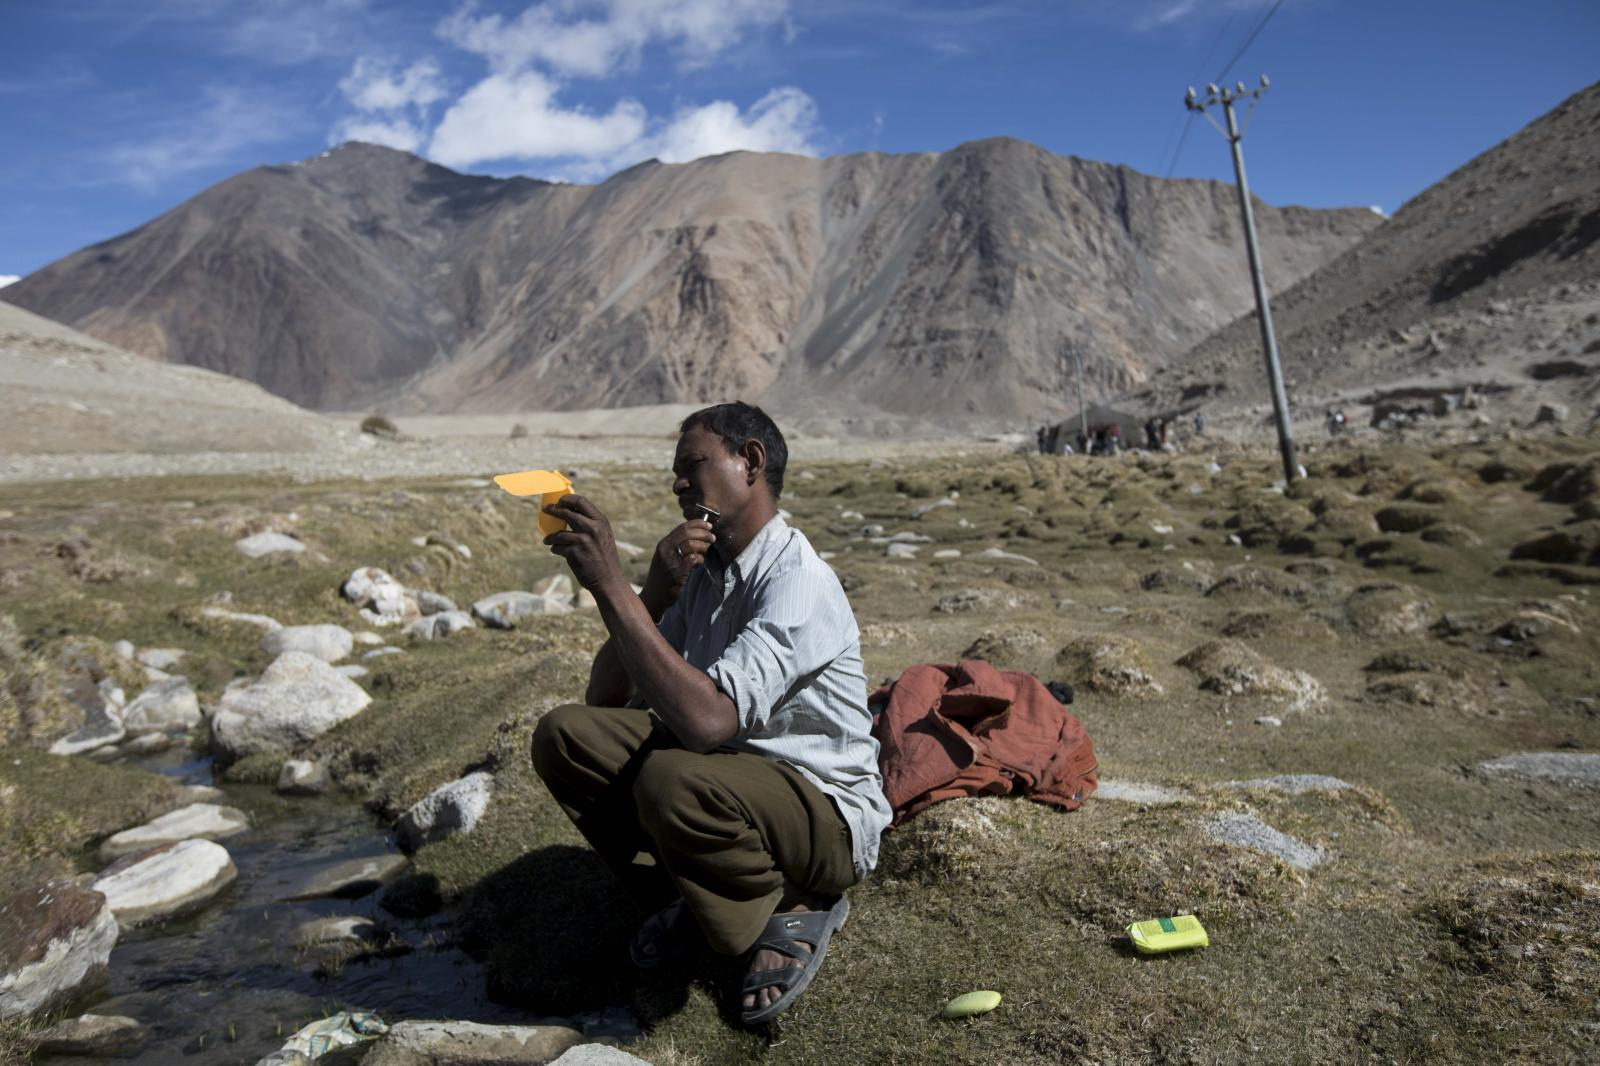 Raj Shekhar, 33, a road maintenance worker from India's low-lying eastern Jharkhand state, shaves on his day off at his campsite near Tangtse village in northern India's Ladakh region.